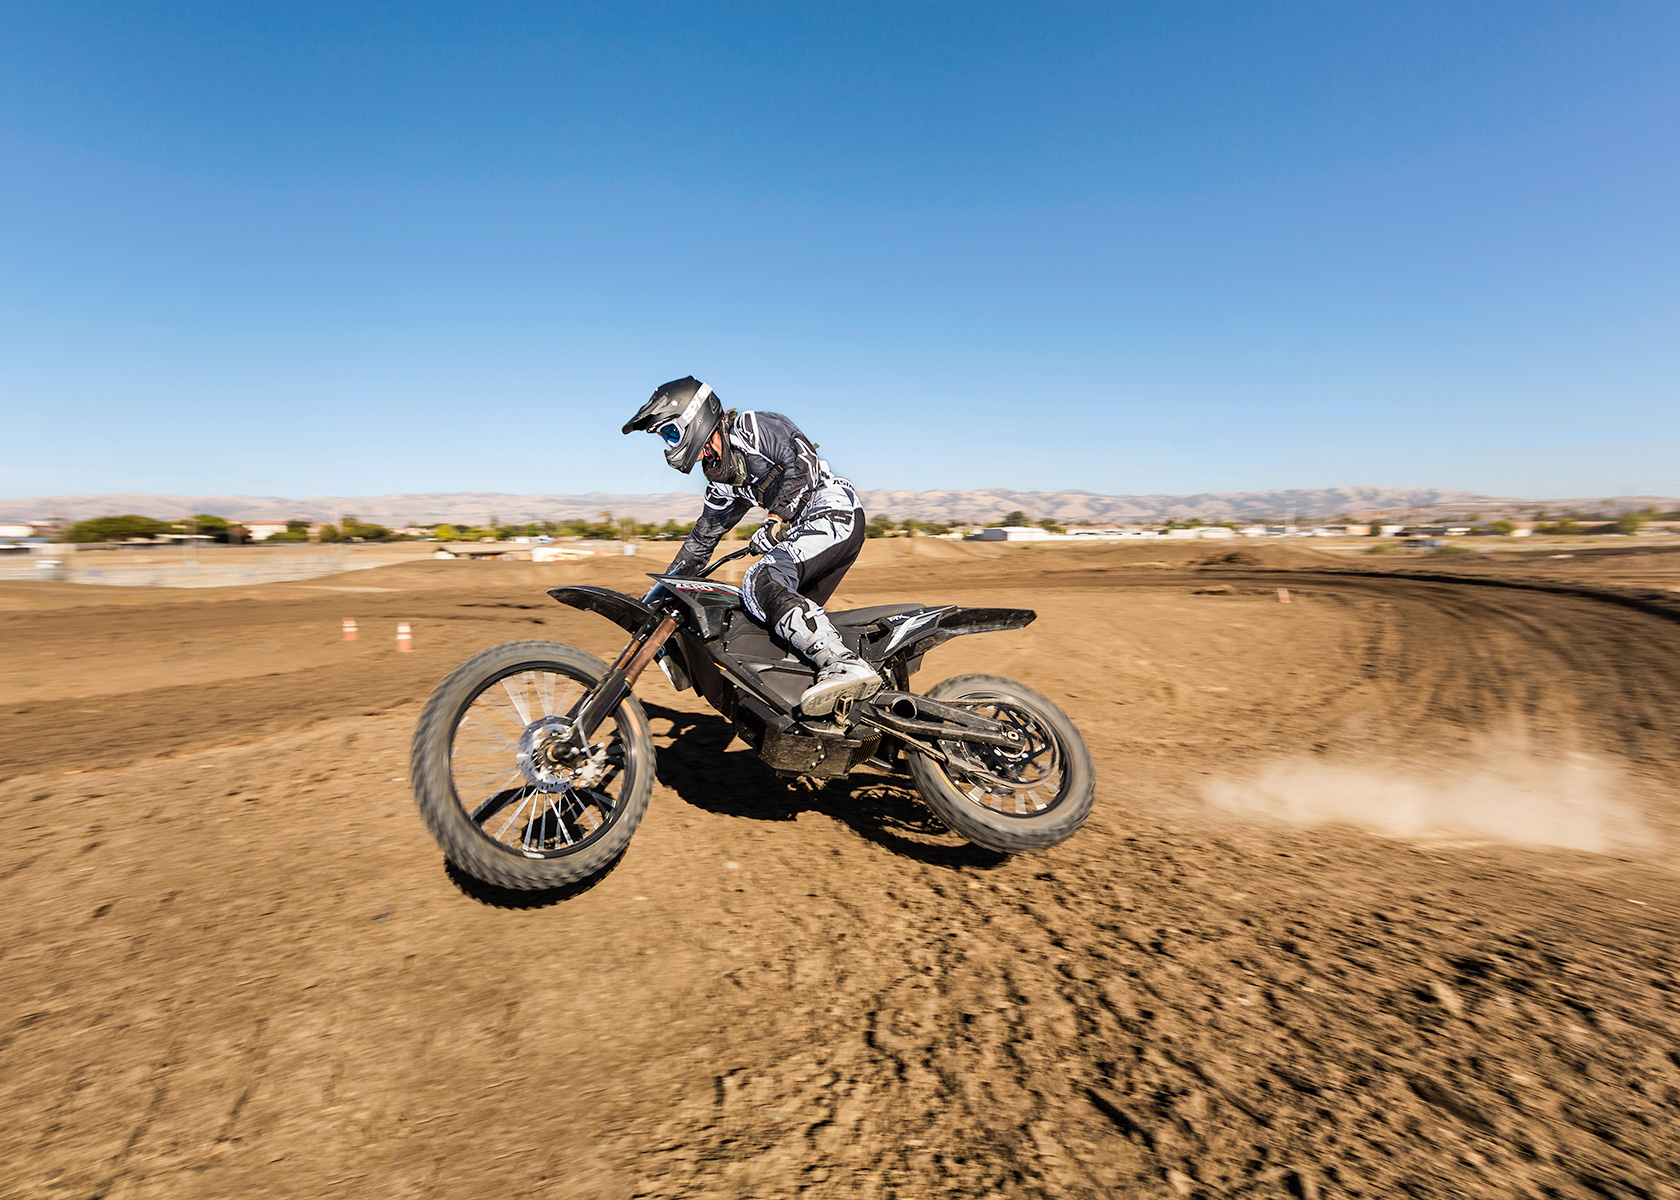 2013 Zero MX Electric Motorcycle: